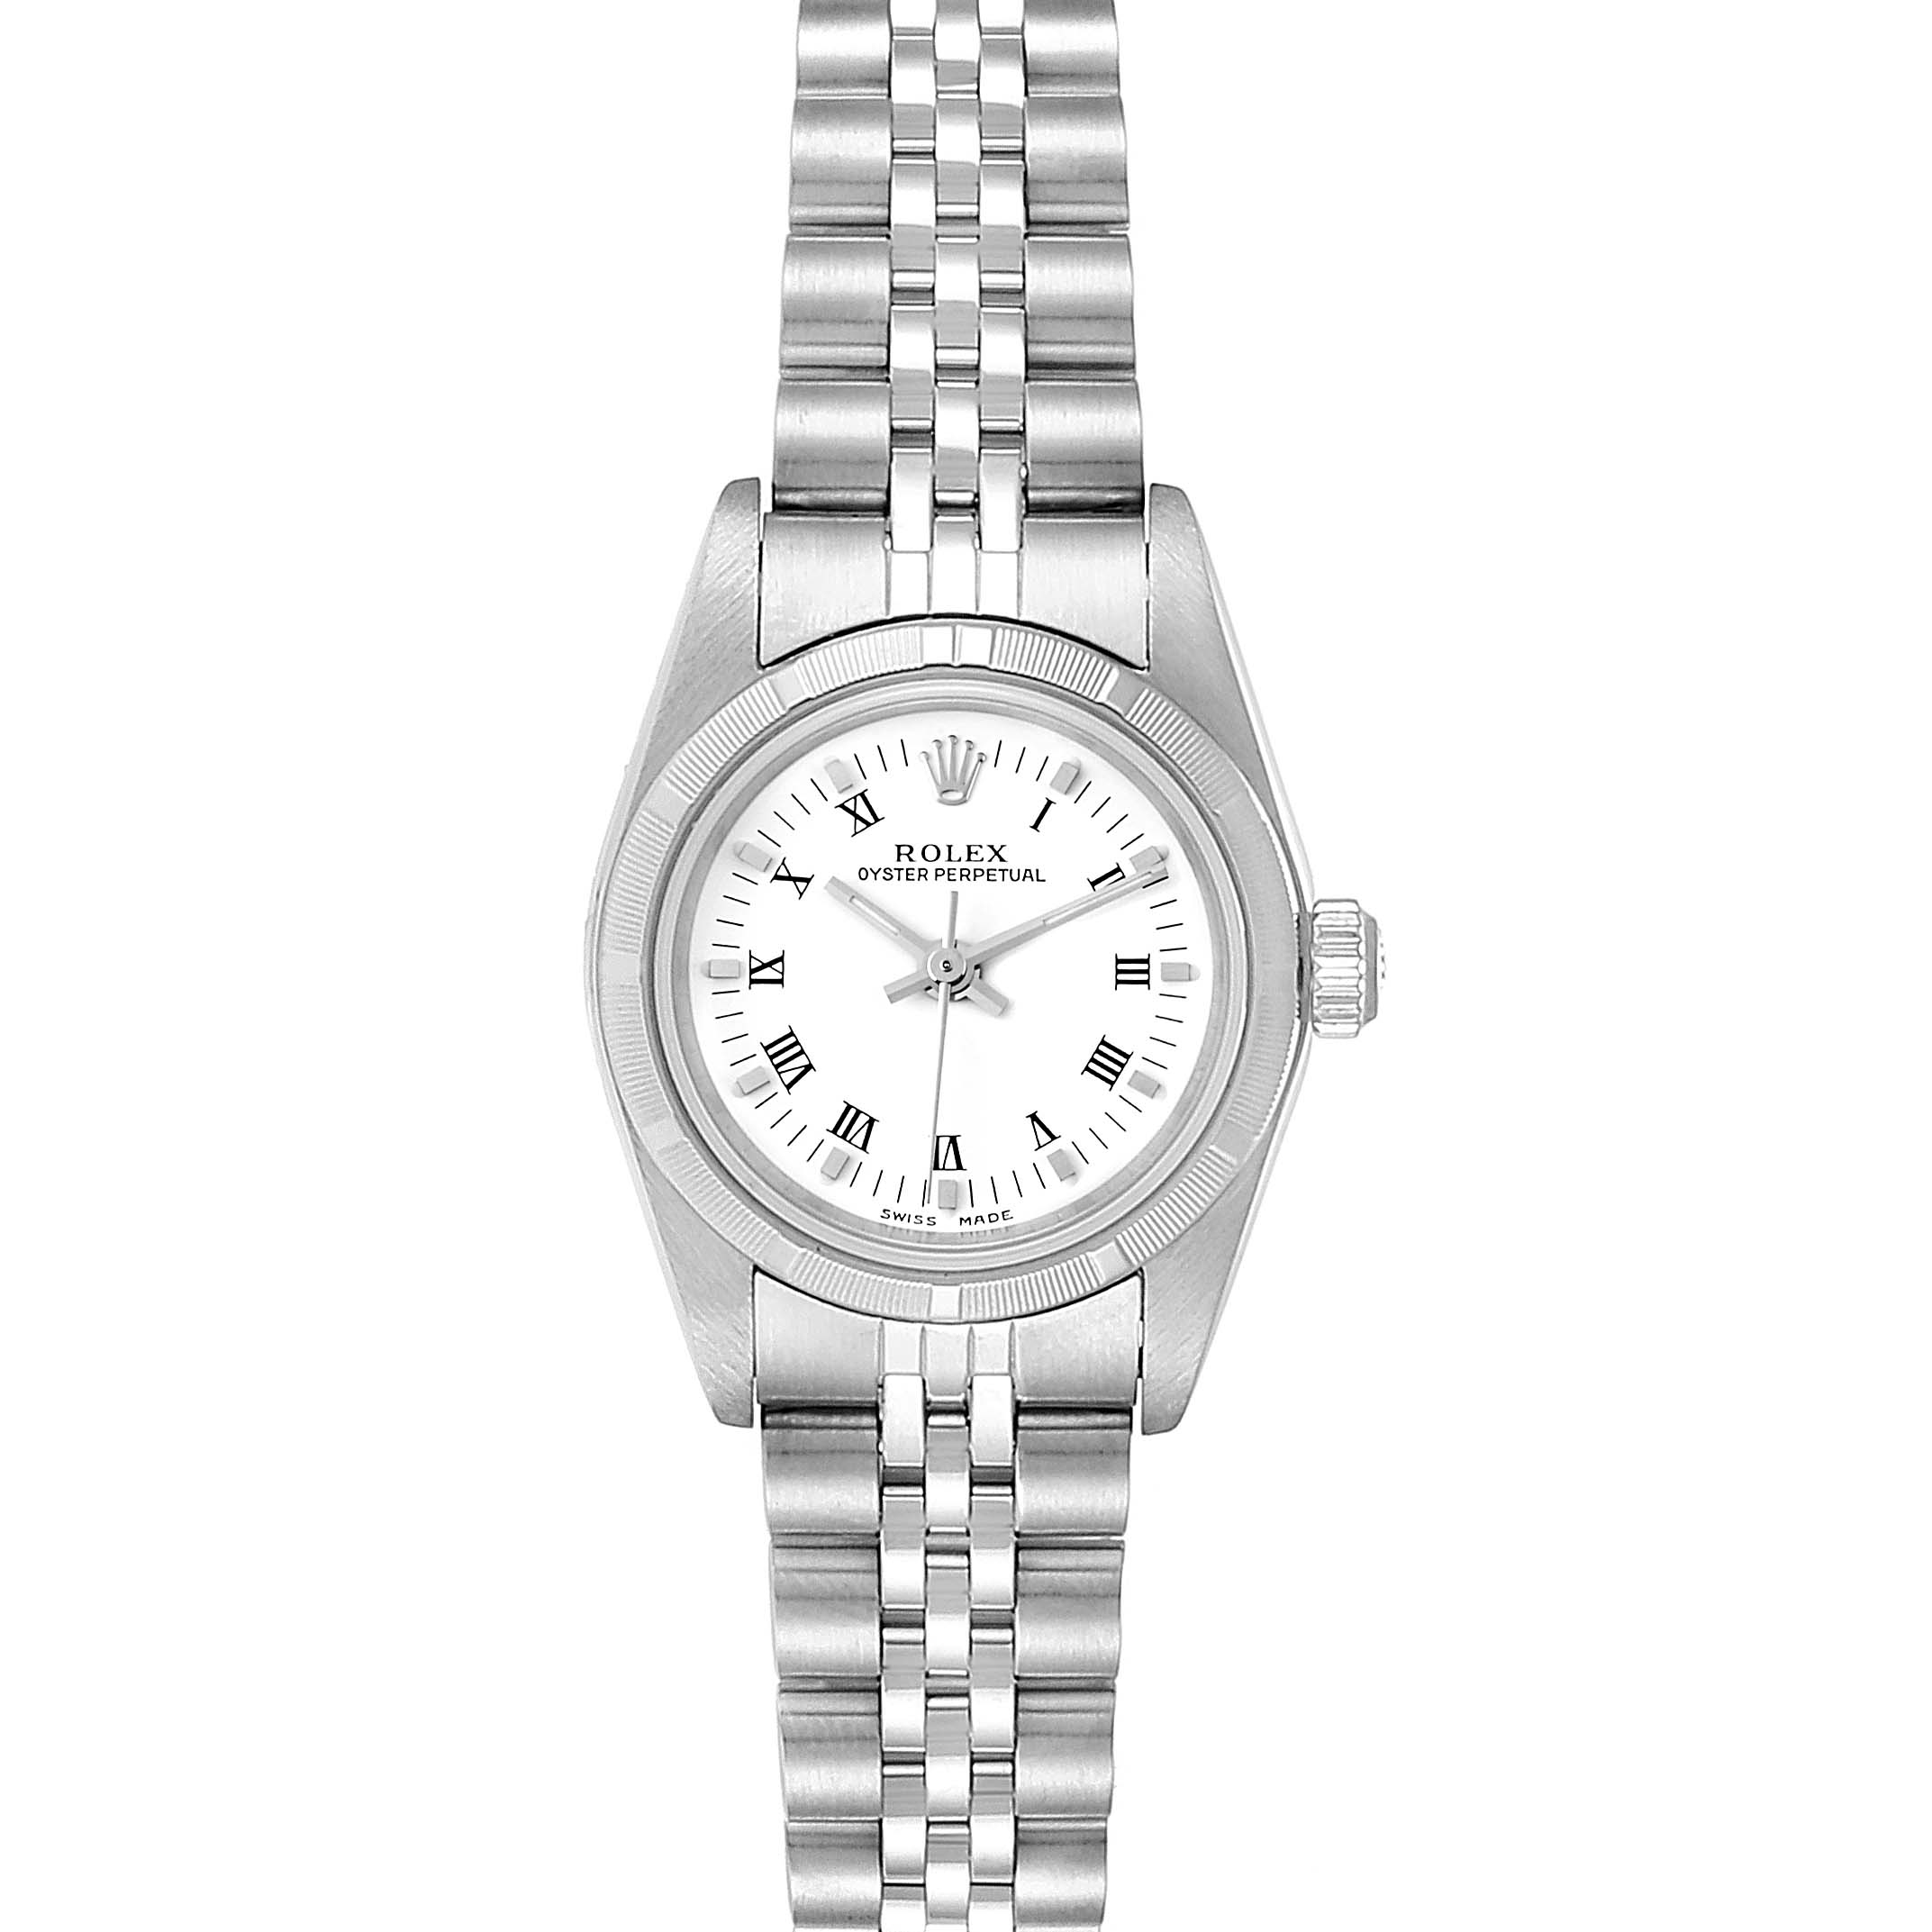 Rolex Oyster Perpetual White Dial Steel Ladies Watch 76030 Box